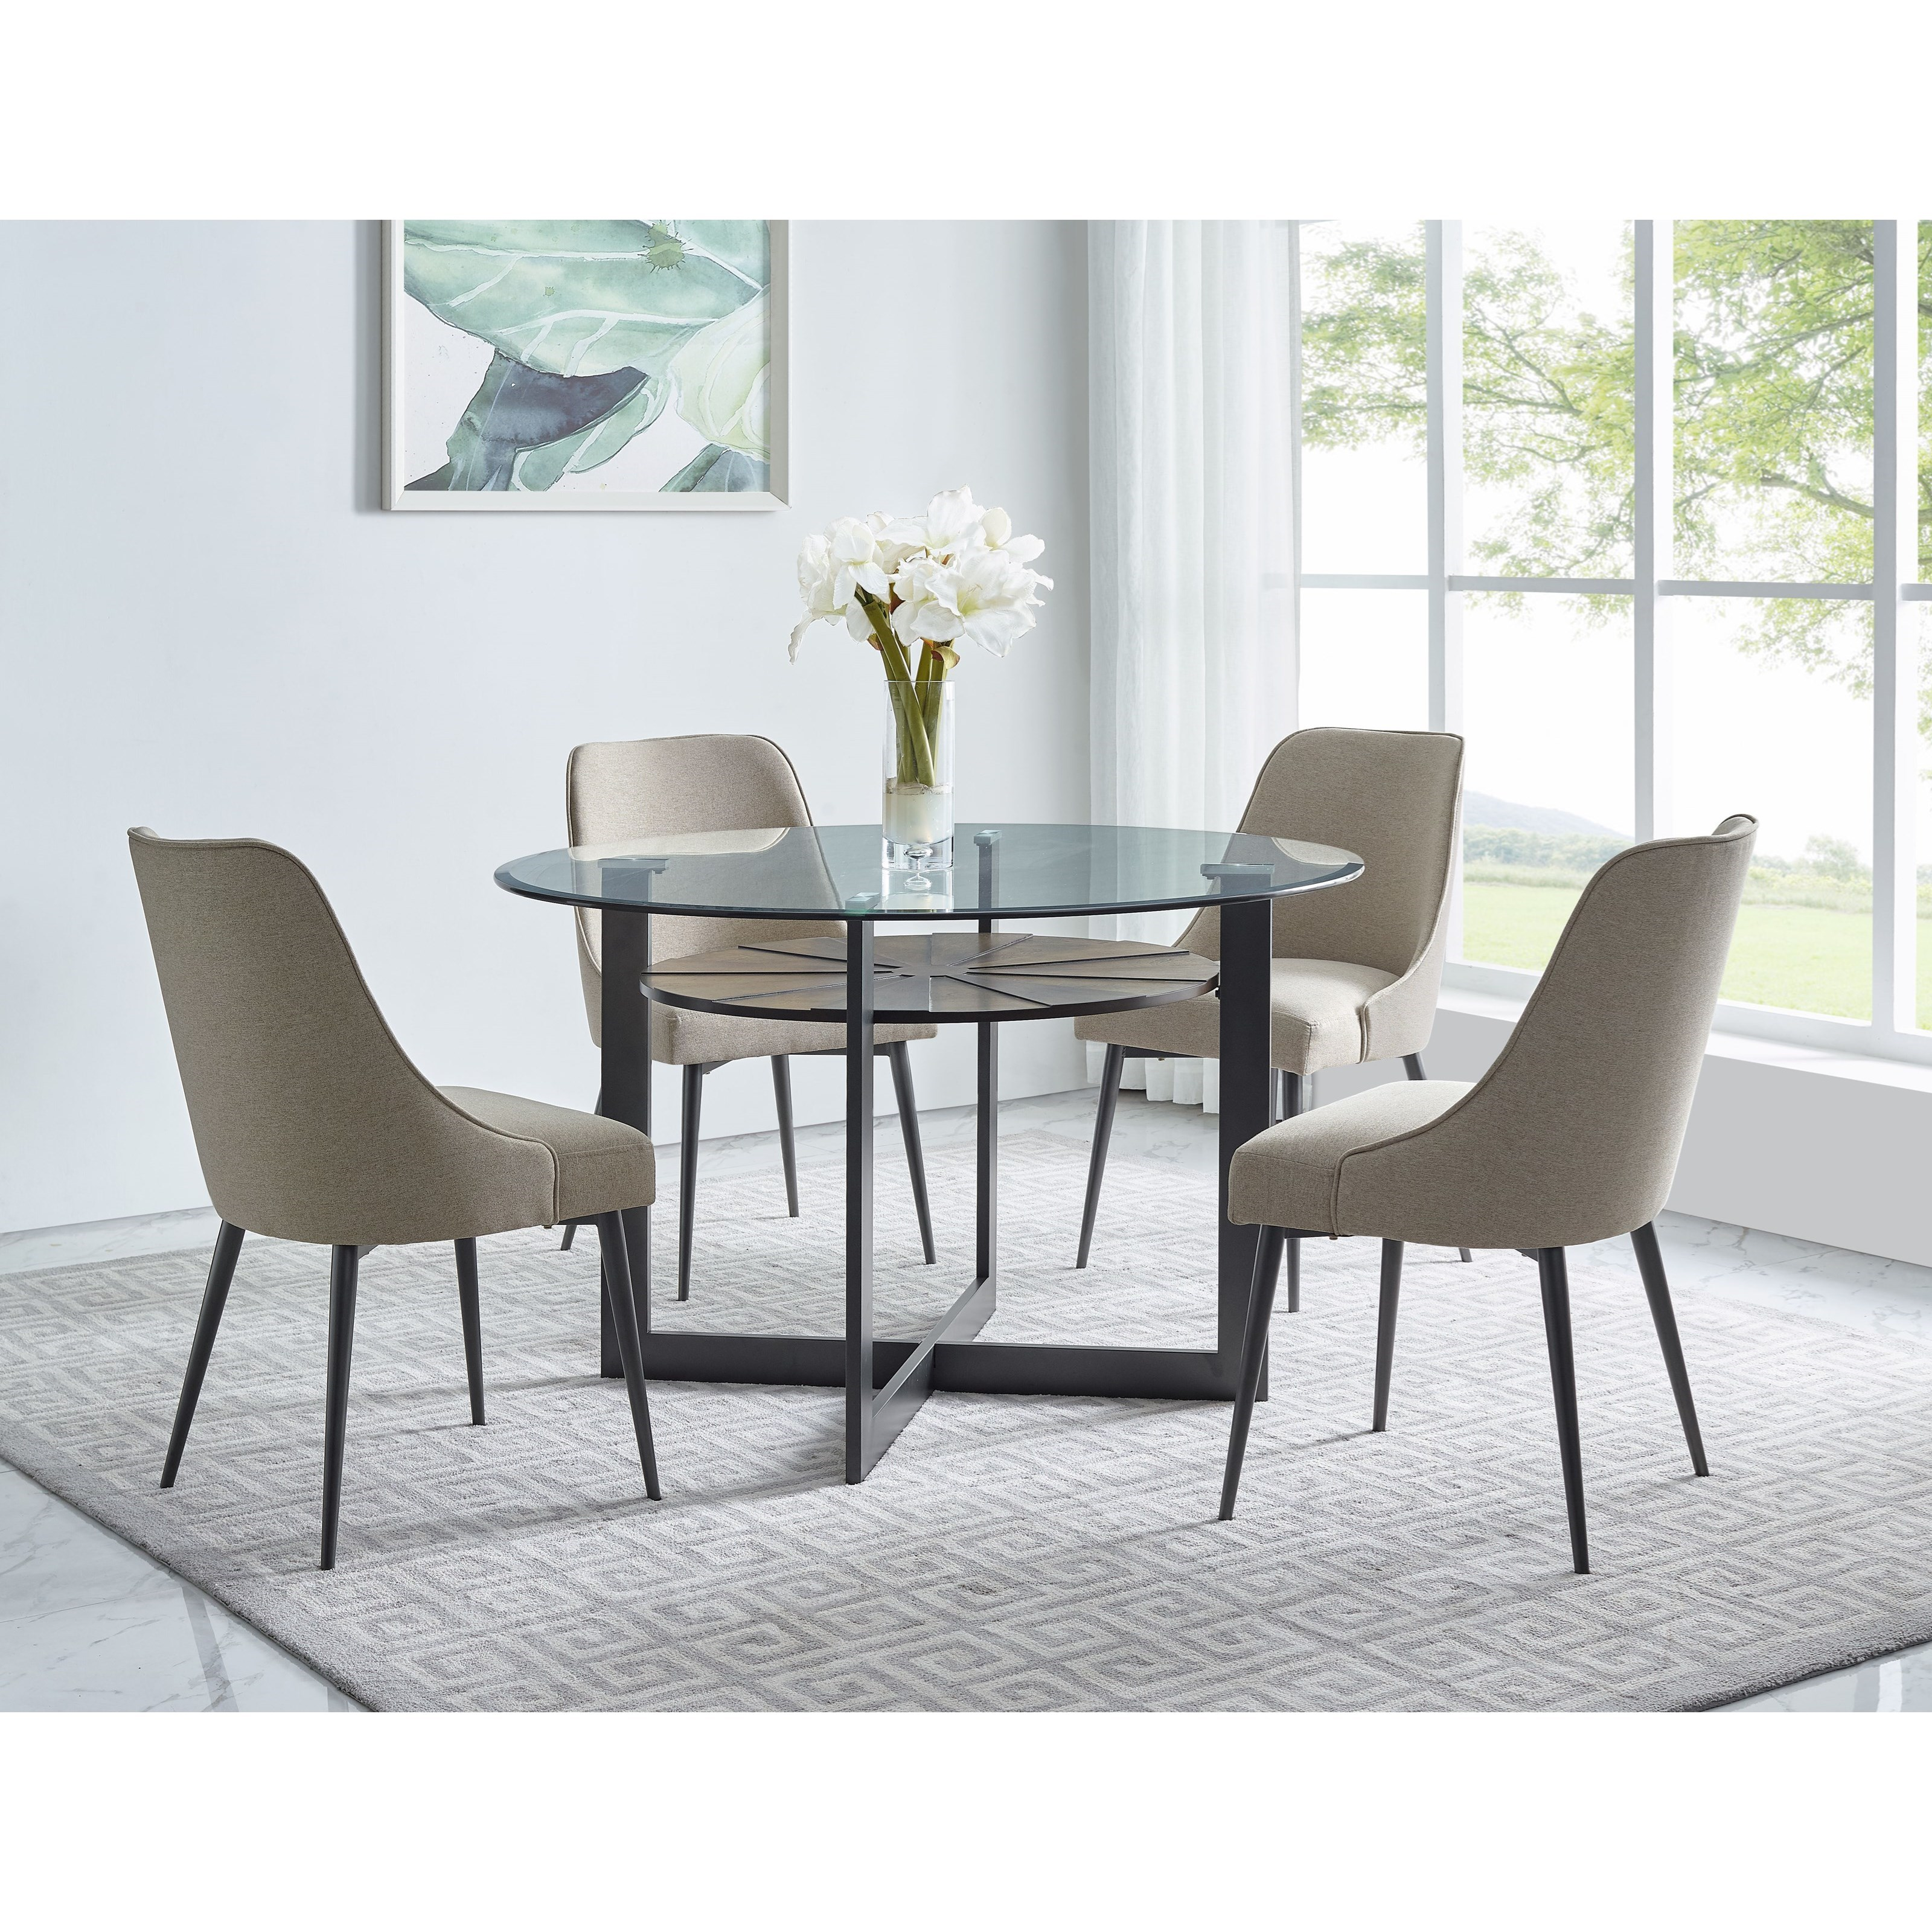 Steve Silver Olson Ss Contemporary 5 Piece Dining Set Wilcox Furniture Dining 5 Piece Sets